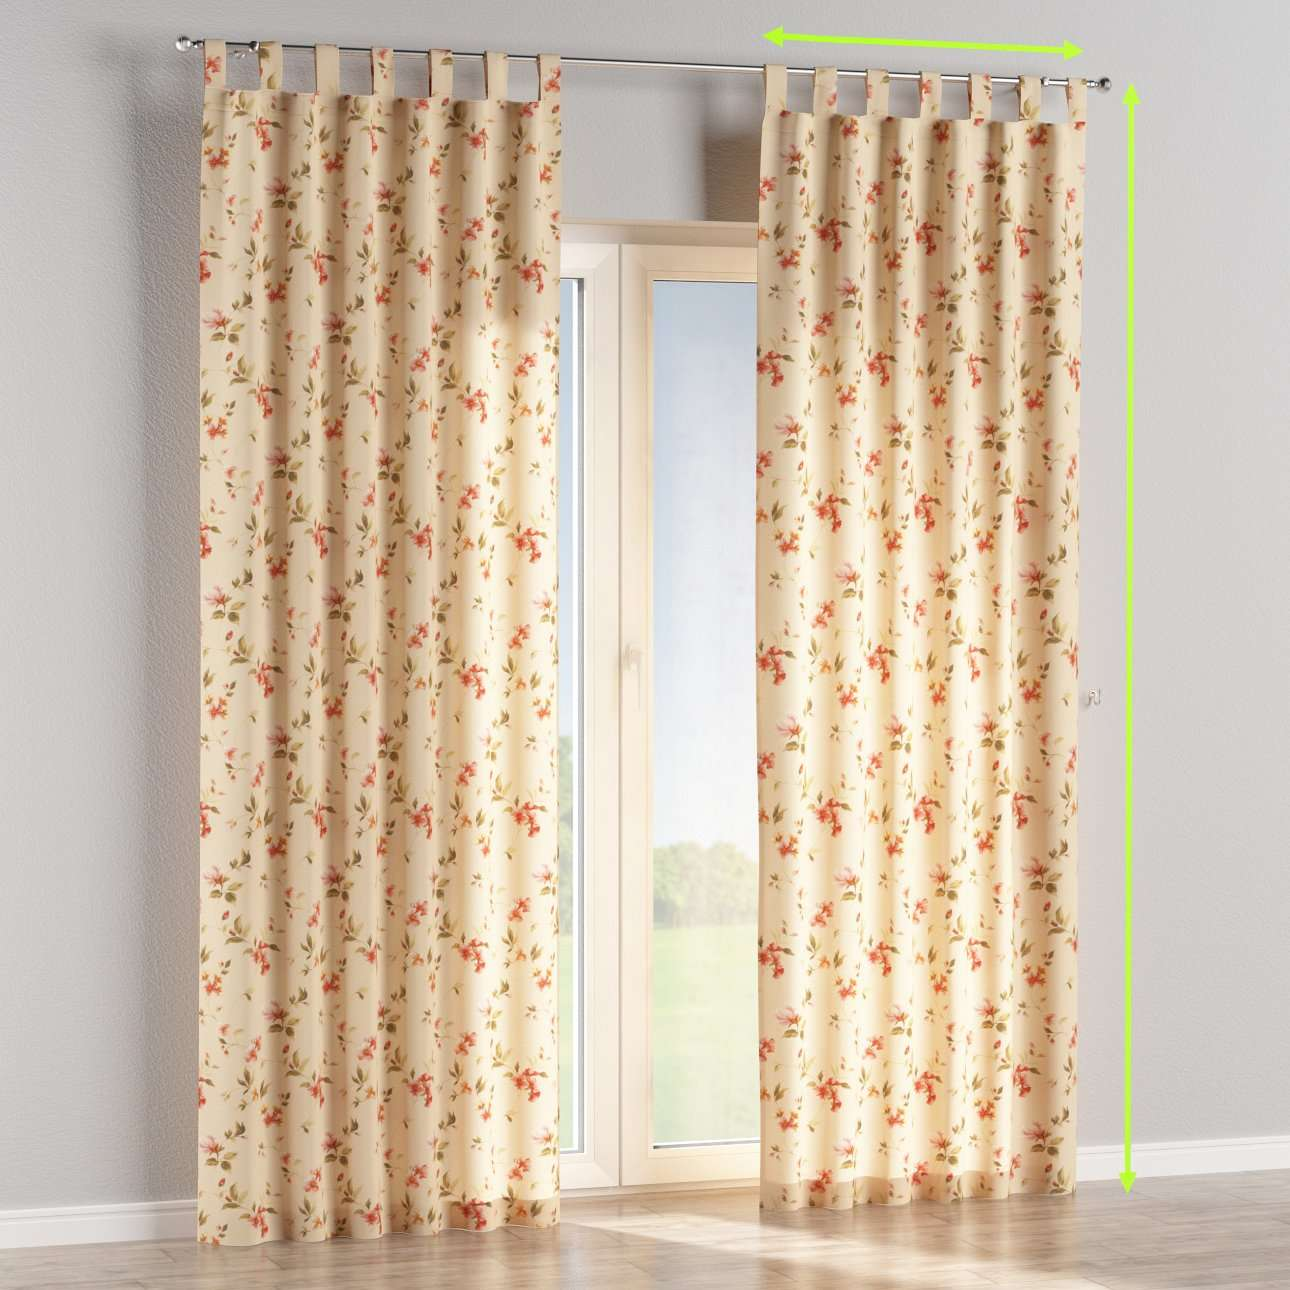 Tab top curtains in collection Londres, fabric: 124-05